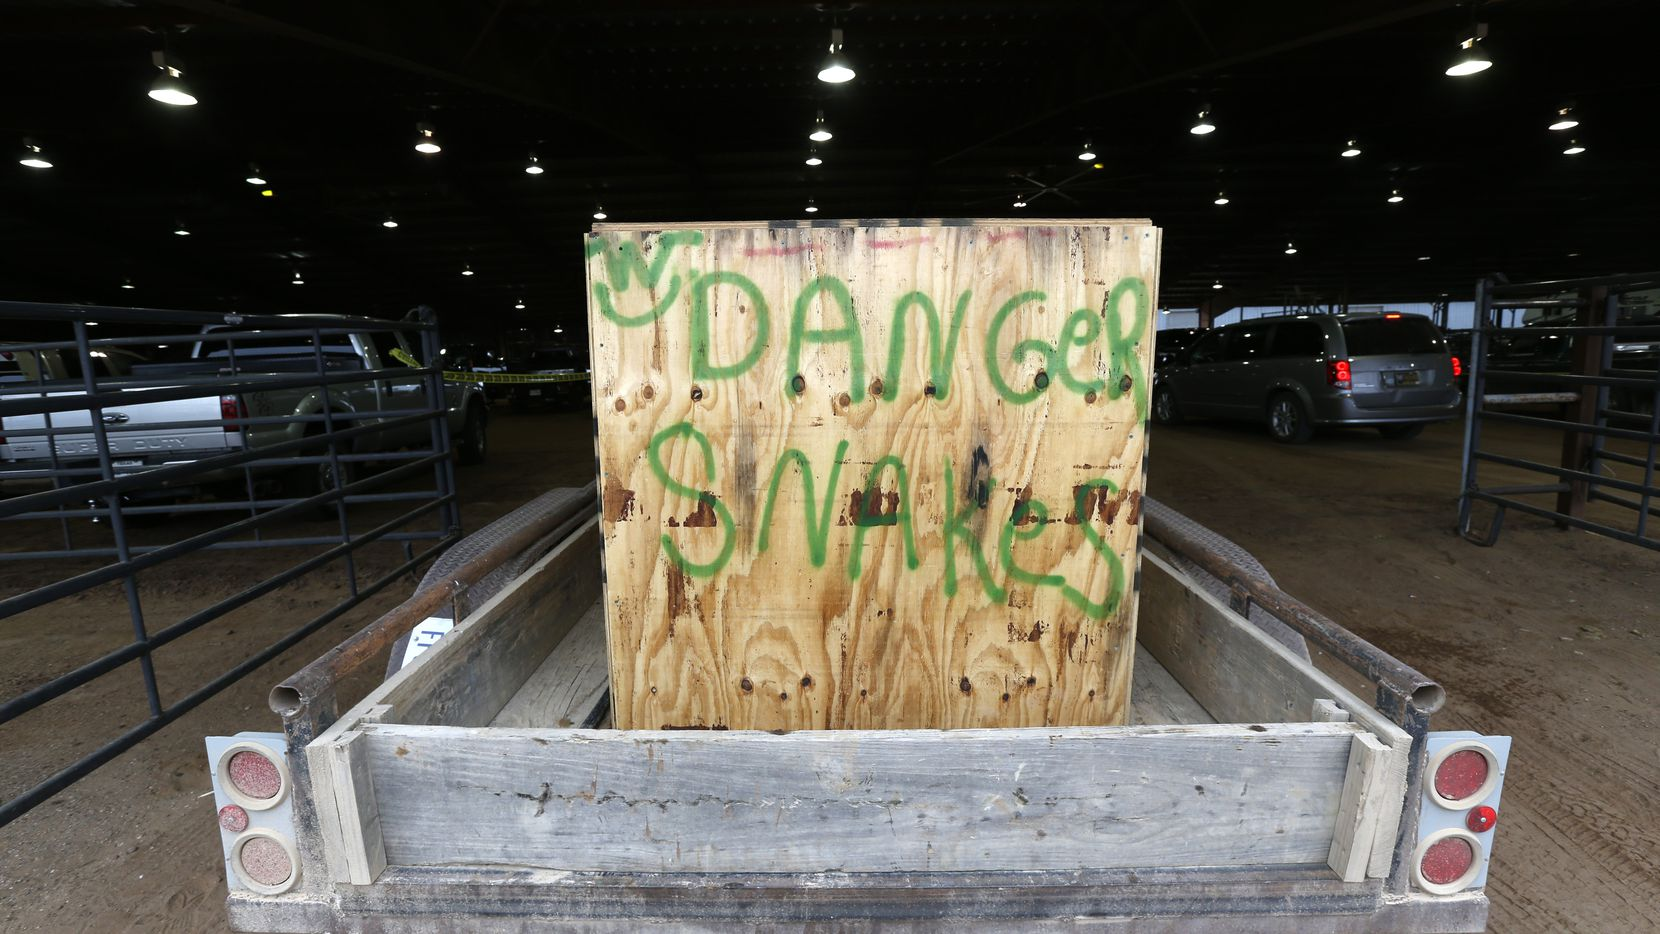 Snakes arrive in trailers at Nolan County Coliseum for the Sweetwater Rattlesnake Roundup in Sweetwater, Texas on March 10, 2017.